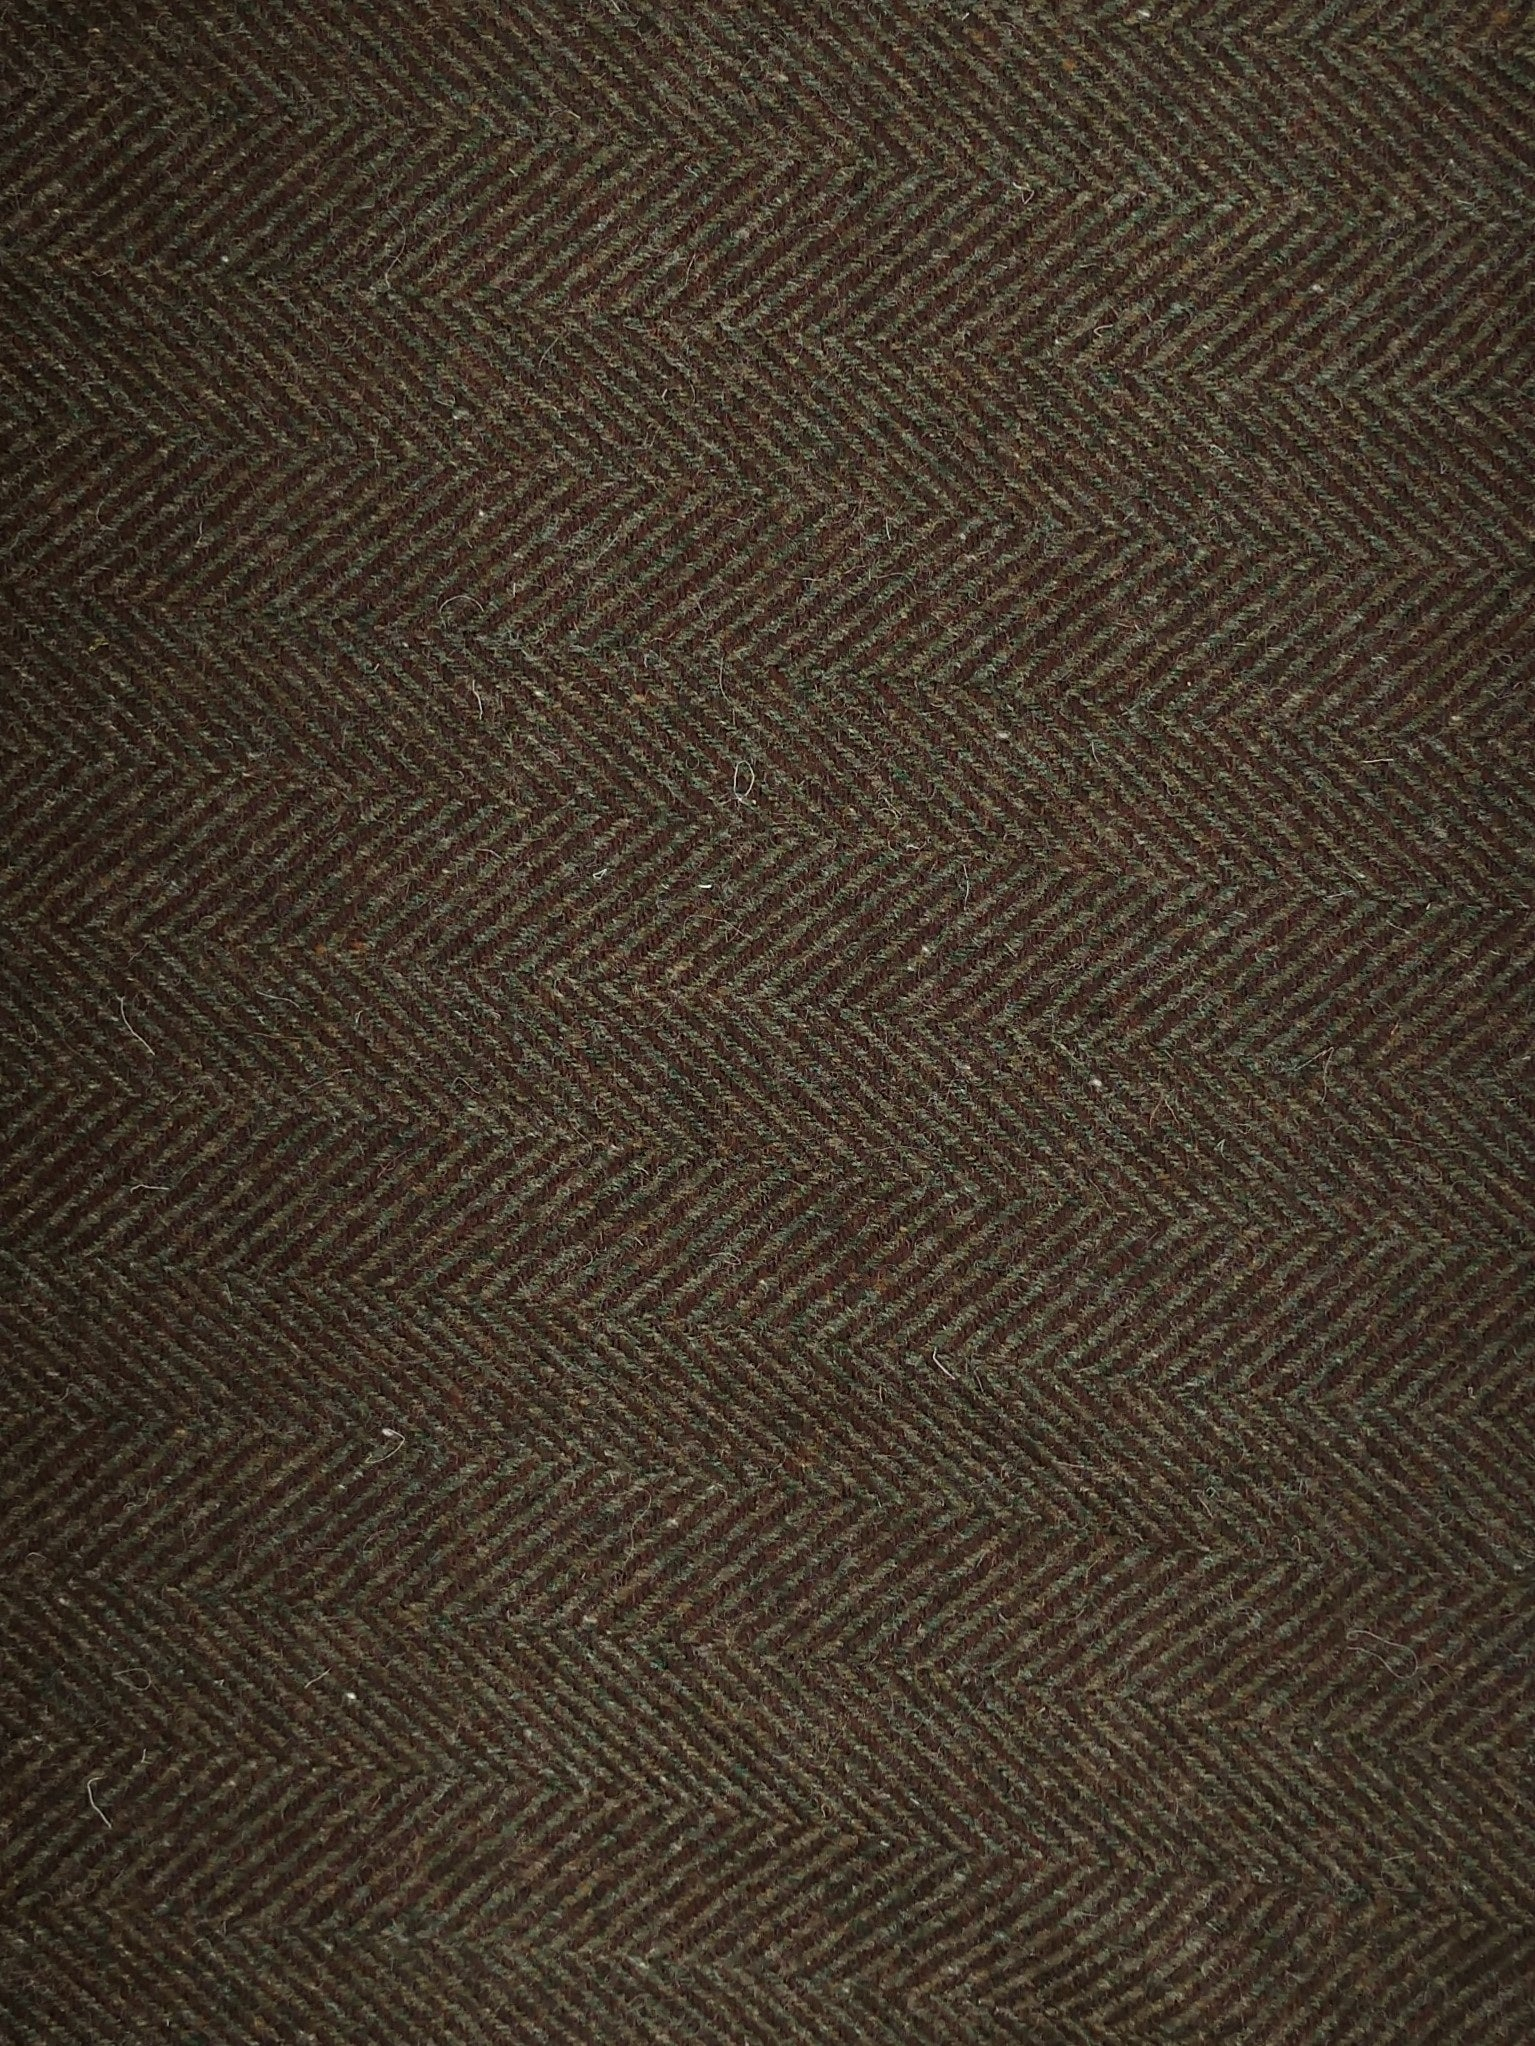 Textured Wool Green Herringbone